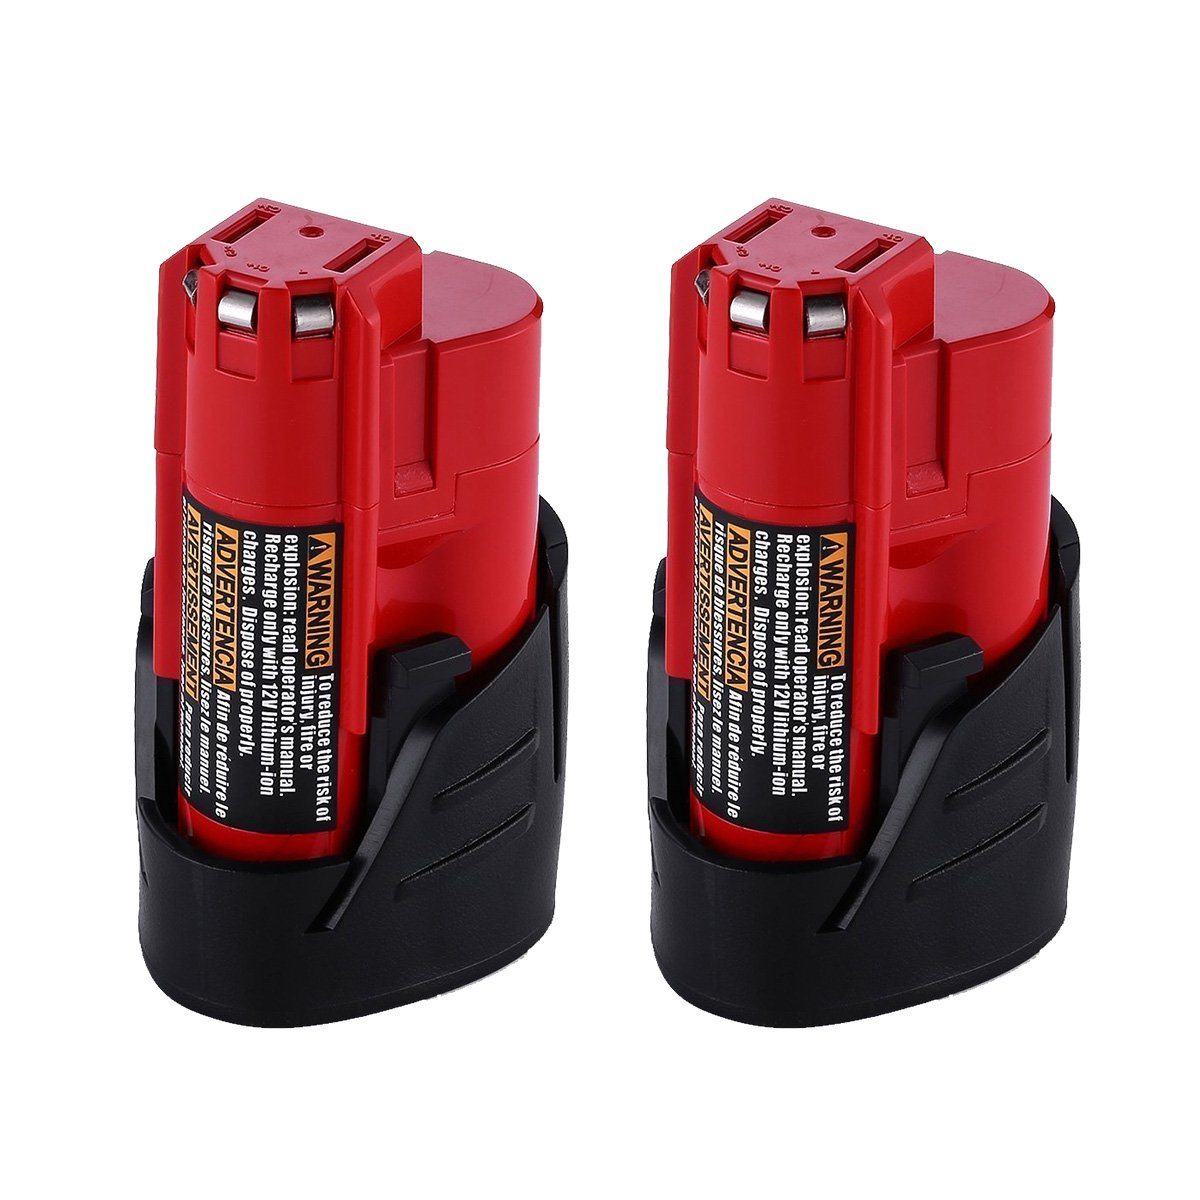 Replacement M12 battery for Milwaukee 12V Battery 2.5Ah 48-11-2402 48-11-2440 48-11-2411 M12 XC Cordless Drill 2Packs